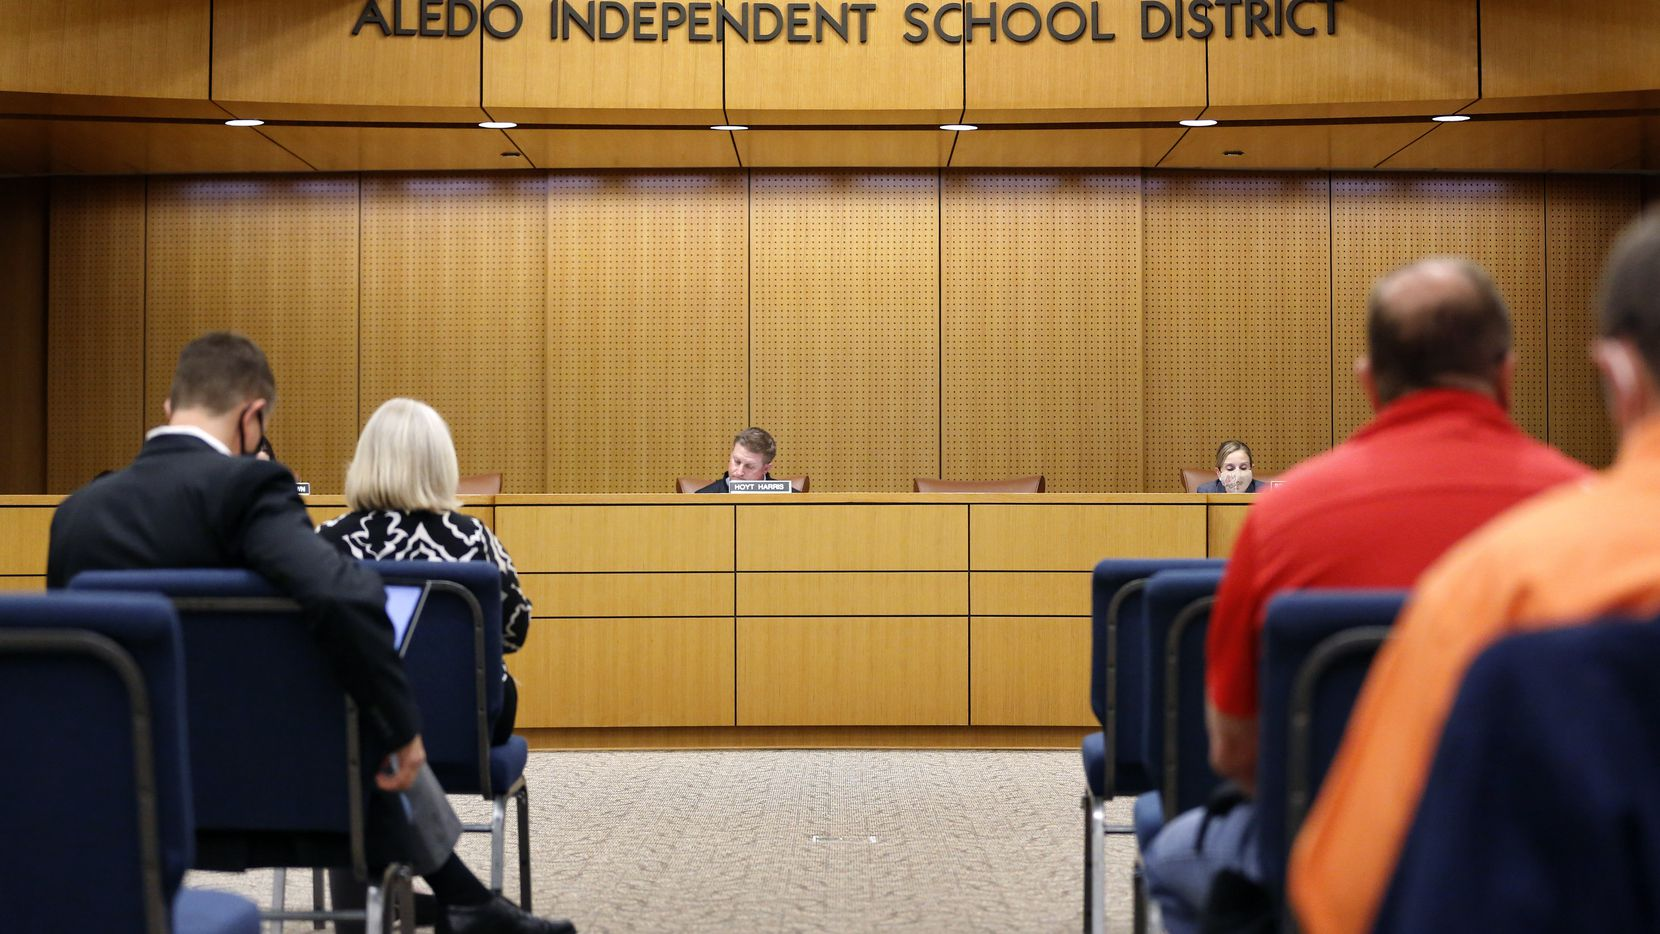 """The Aledo ISD listened to parents and supporters who voiced concerns about a student-led racist Snapchat group with multiple names, including """"Slave Trade"""" and another that included a racial slur. A group of about 40 people came to voice their concerns during an Aledo ISD school board meeting in Aledo, Texas, Thursday, April 15, 2021."""